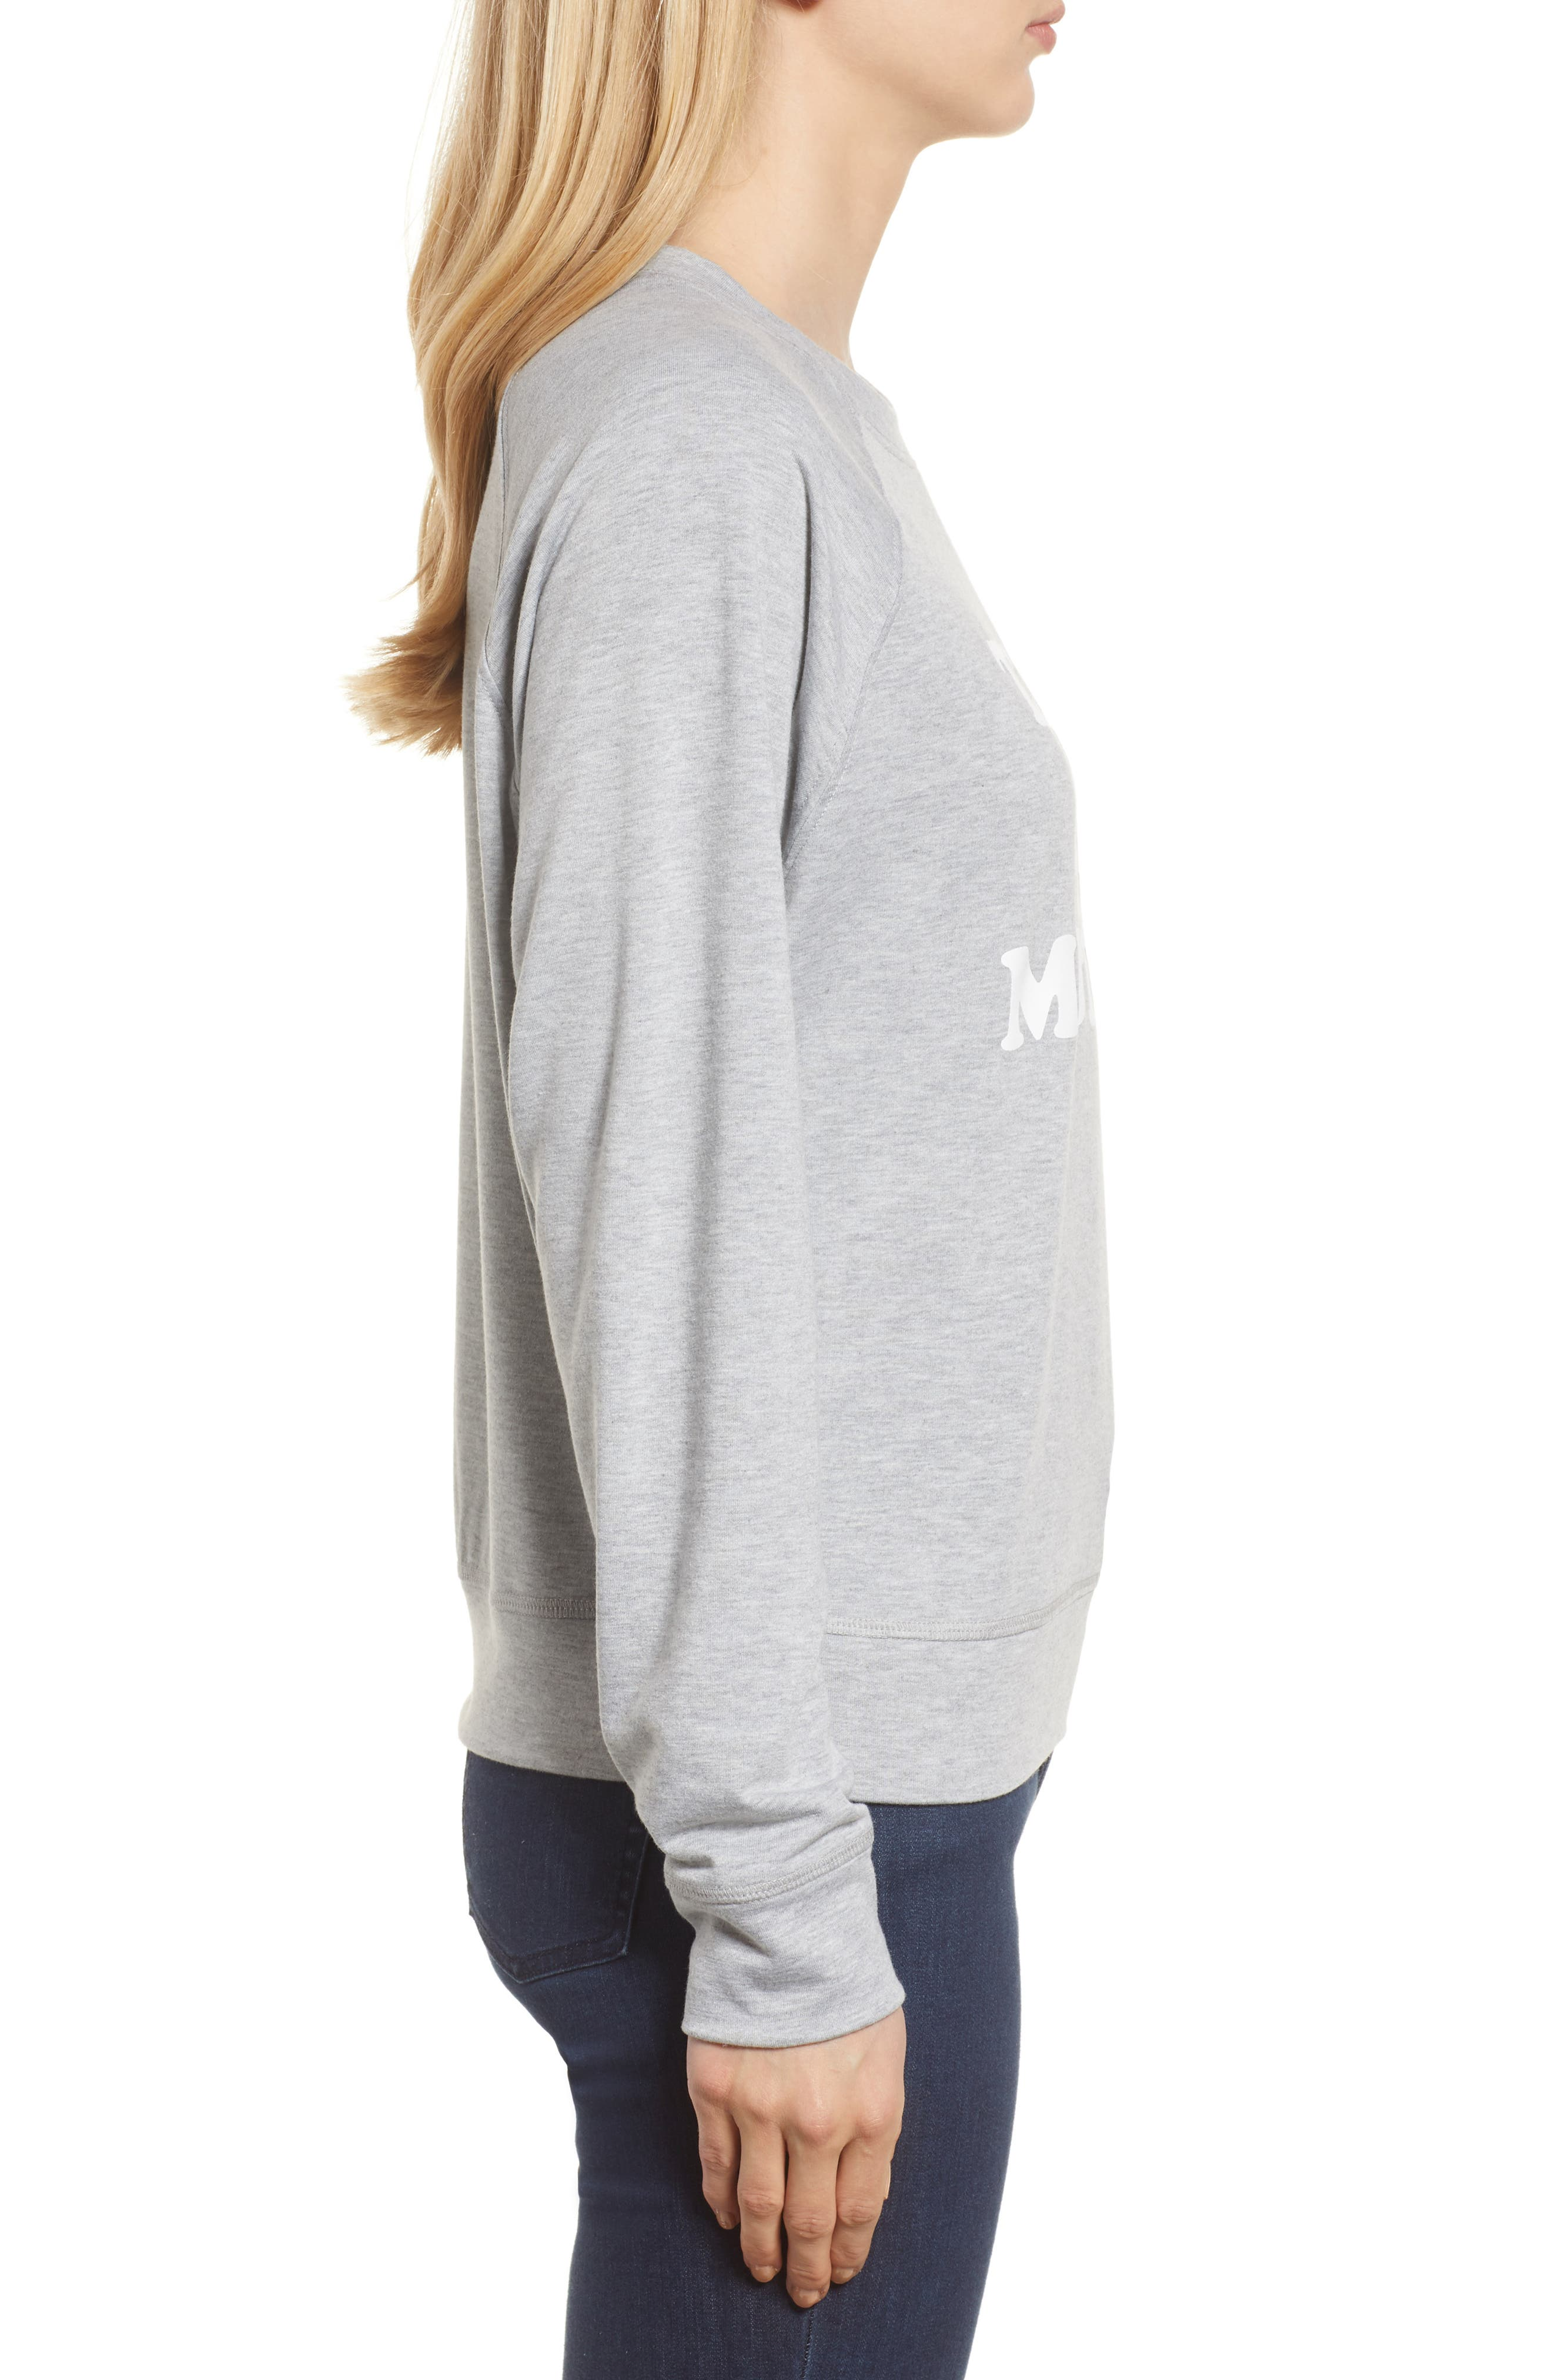 Off-Duty Tired as a Mother Sweatshirt,                             Alternate thumbnail 3, color,                             Grey Heather